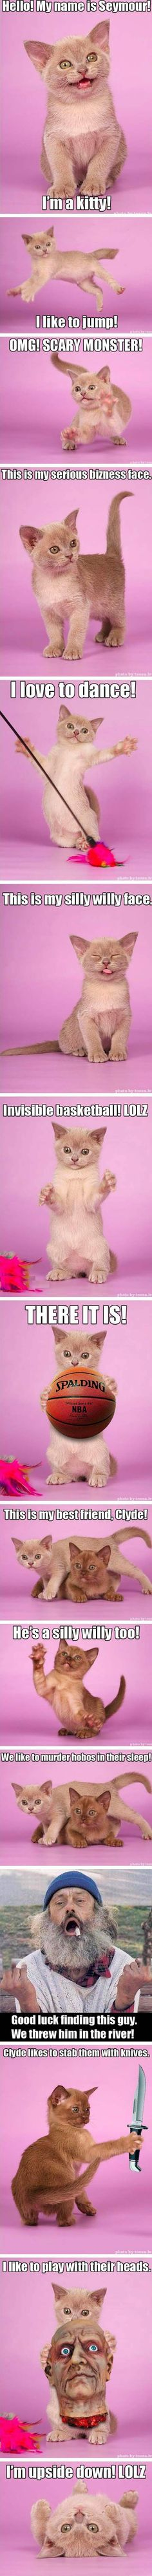 i don't know why but this deeply entertained me #catsmemelaughingsohard